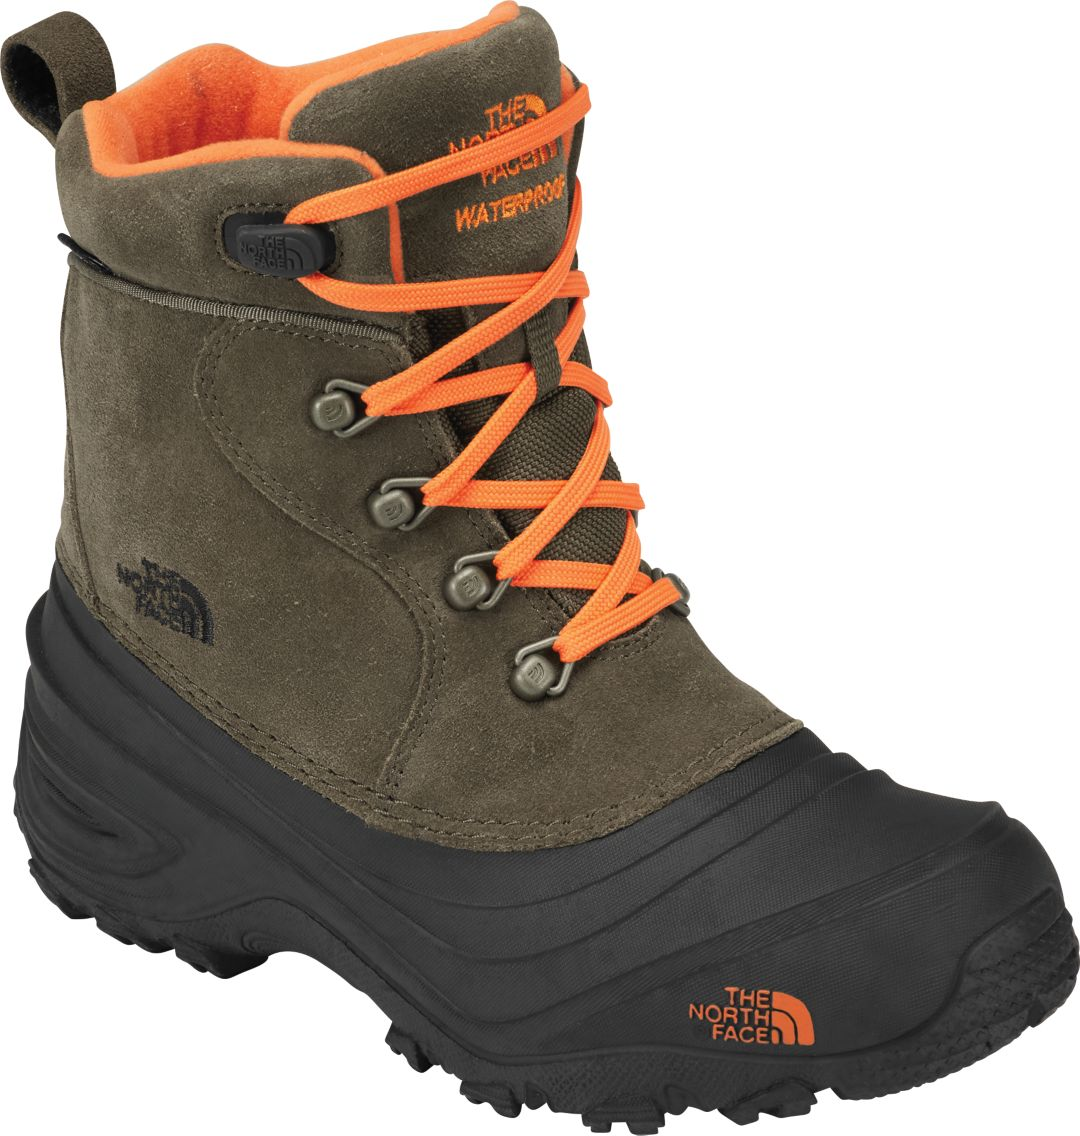 13cc869d1 The North Face Kids' Chilkat Lace II 200g Waterproof Winter Boots